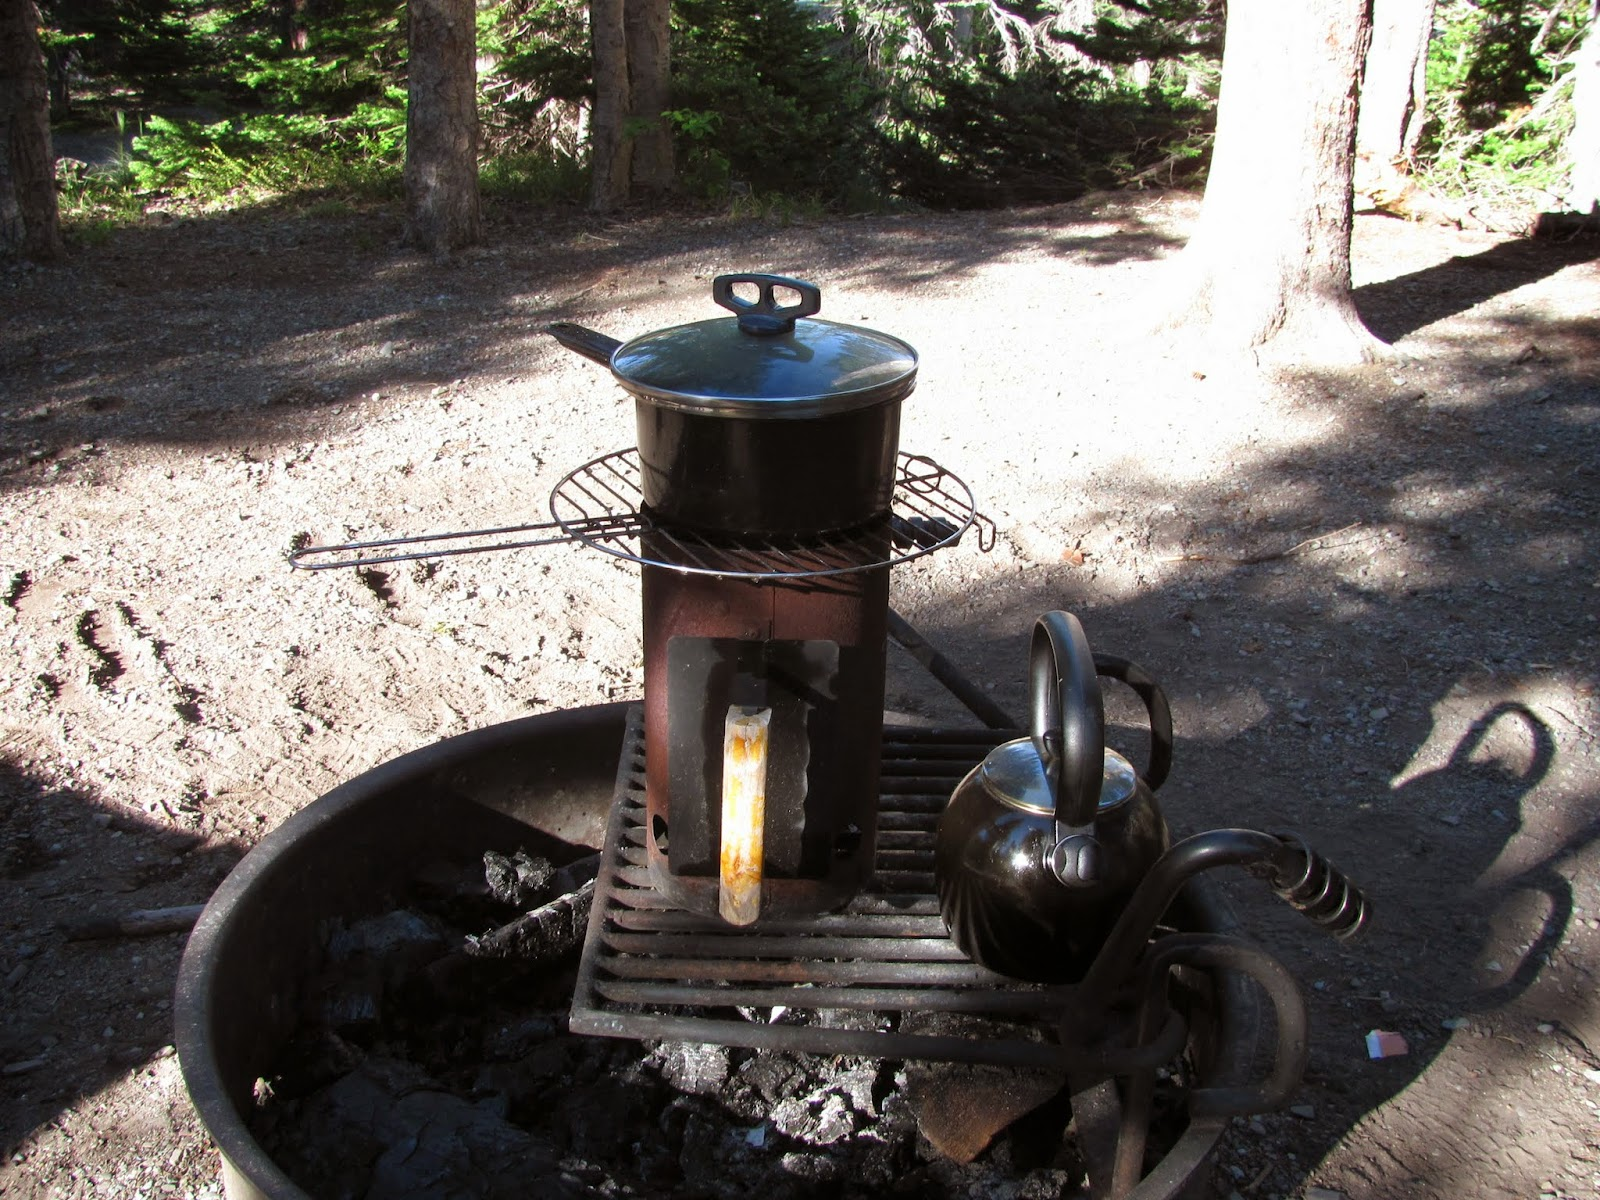 Cooking beans in the black pot over the charcoal chimney at Glacier National Park, Montana